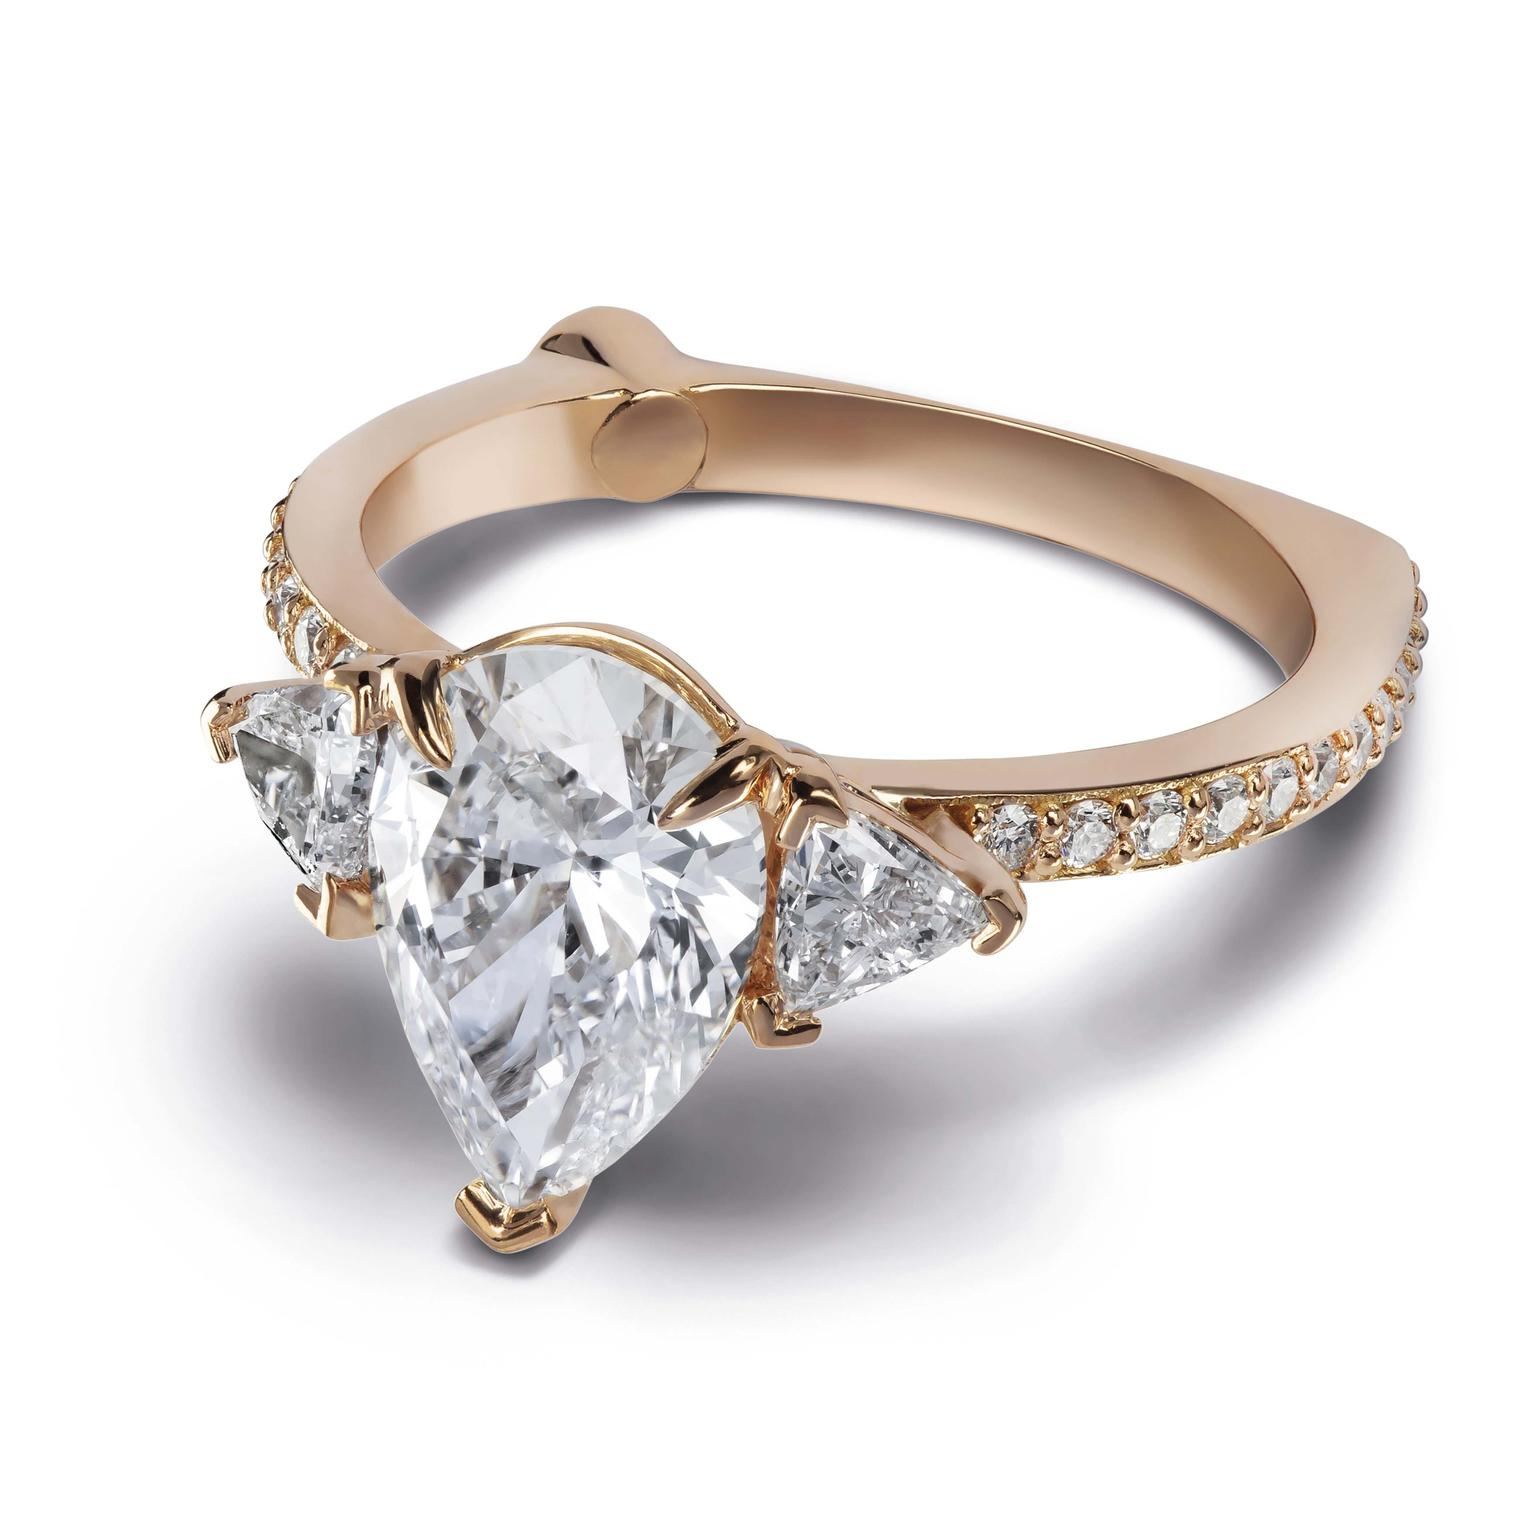 The Diamond Foundry Alessa Jewelry ring